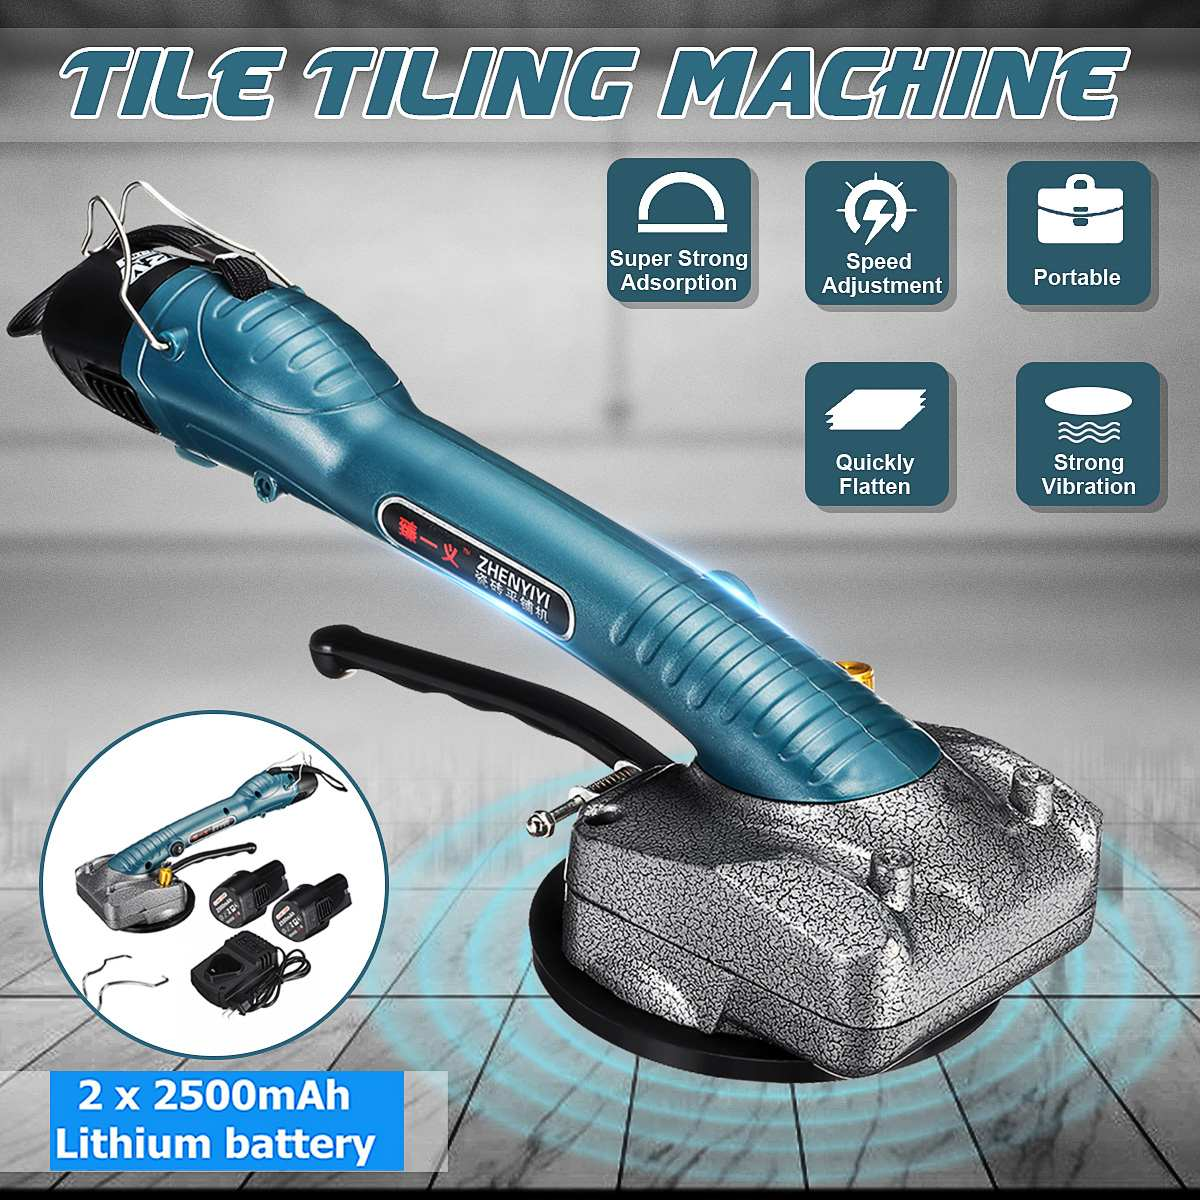 600W Tile Machine Vibrators High Power Tile Tiling Machine Electric Floor Tile Vibrator Tiling Tile Tool+2pcs 2500mAh Batteries